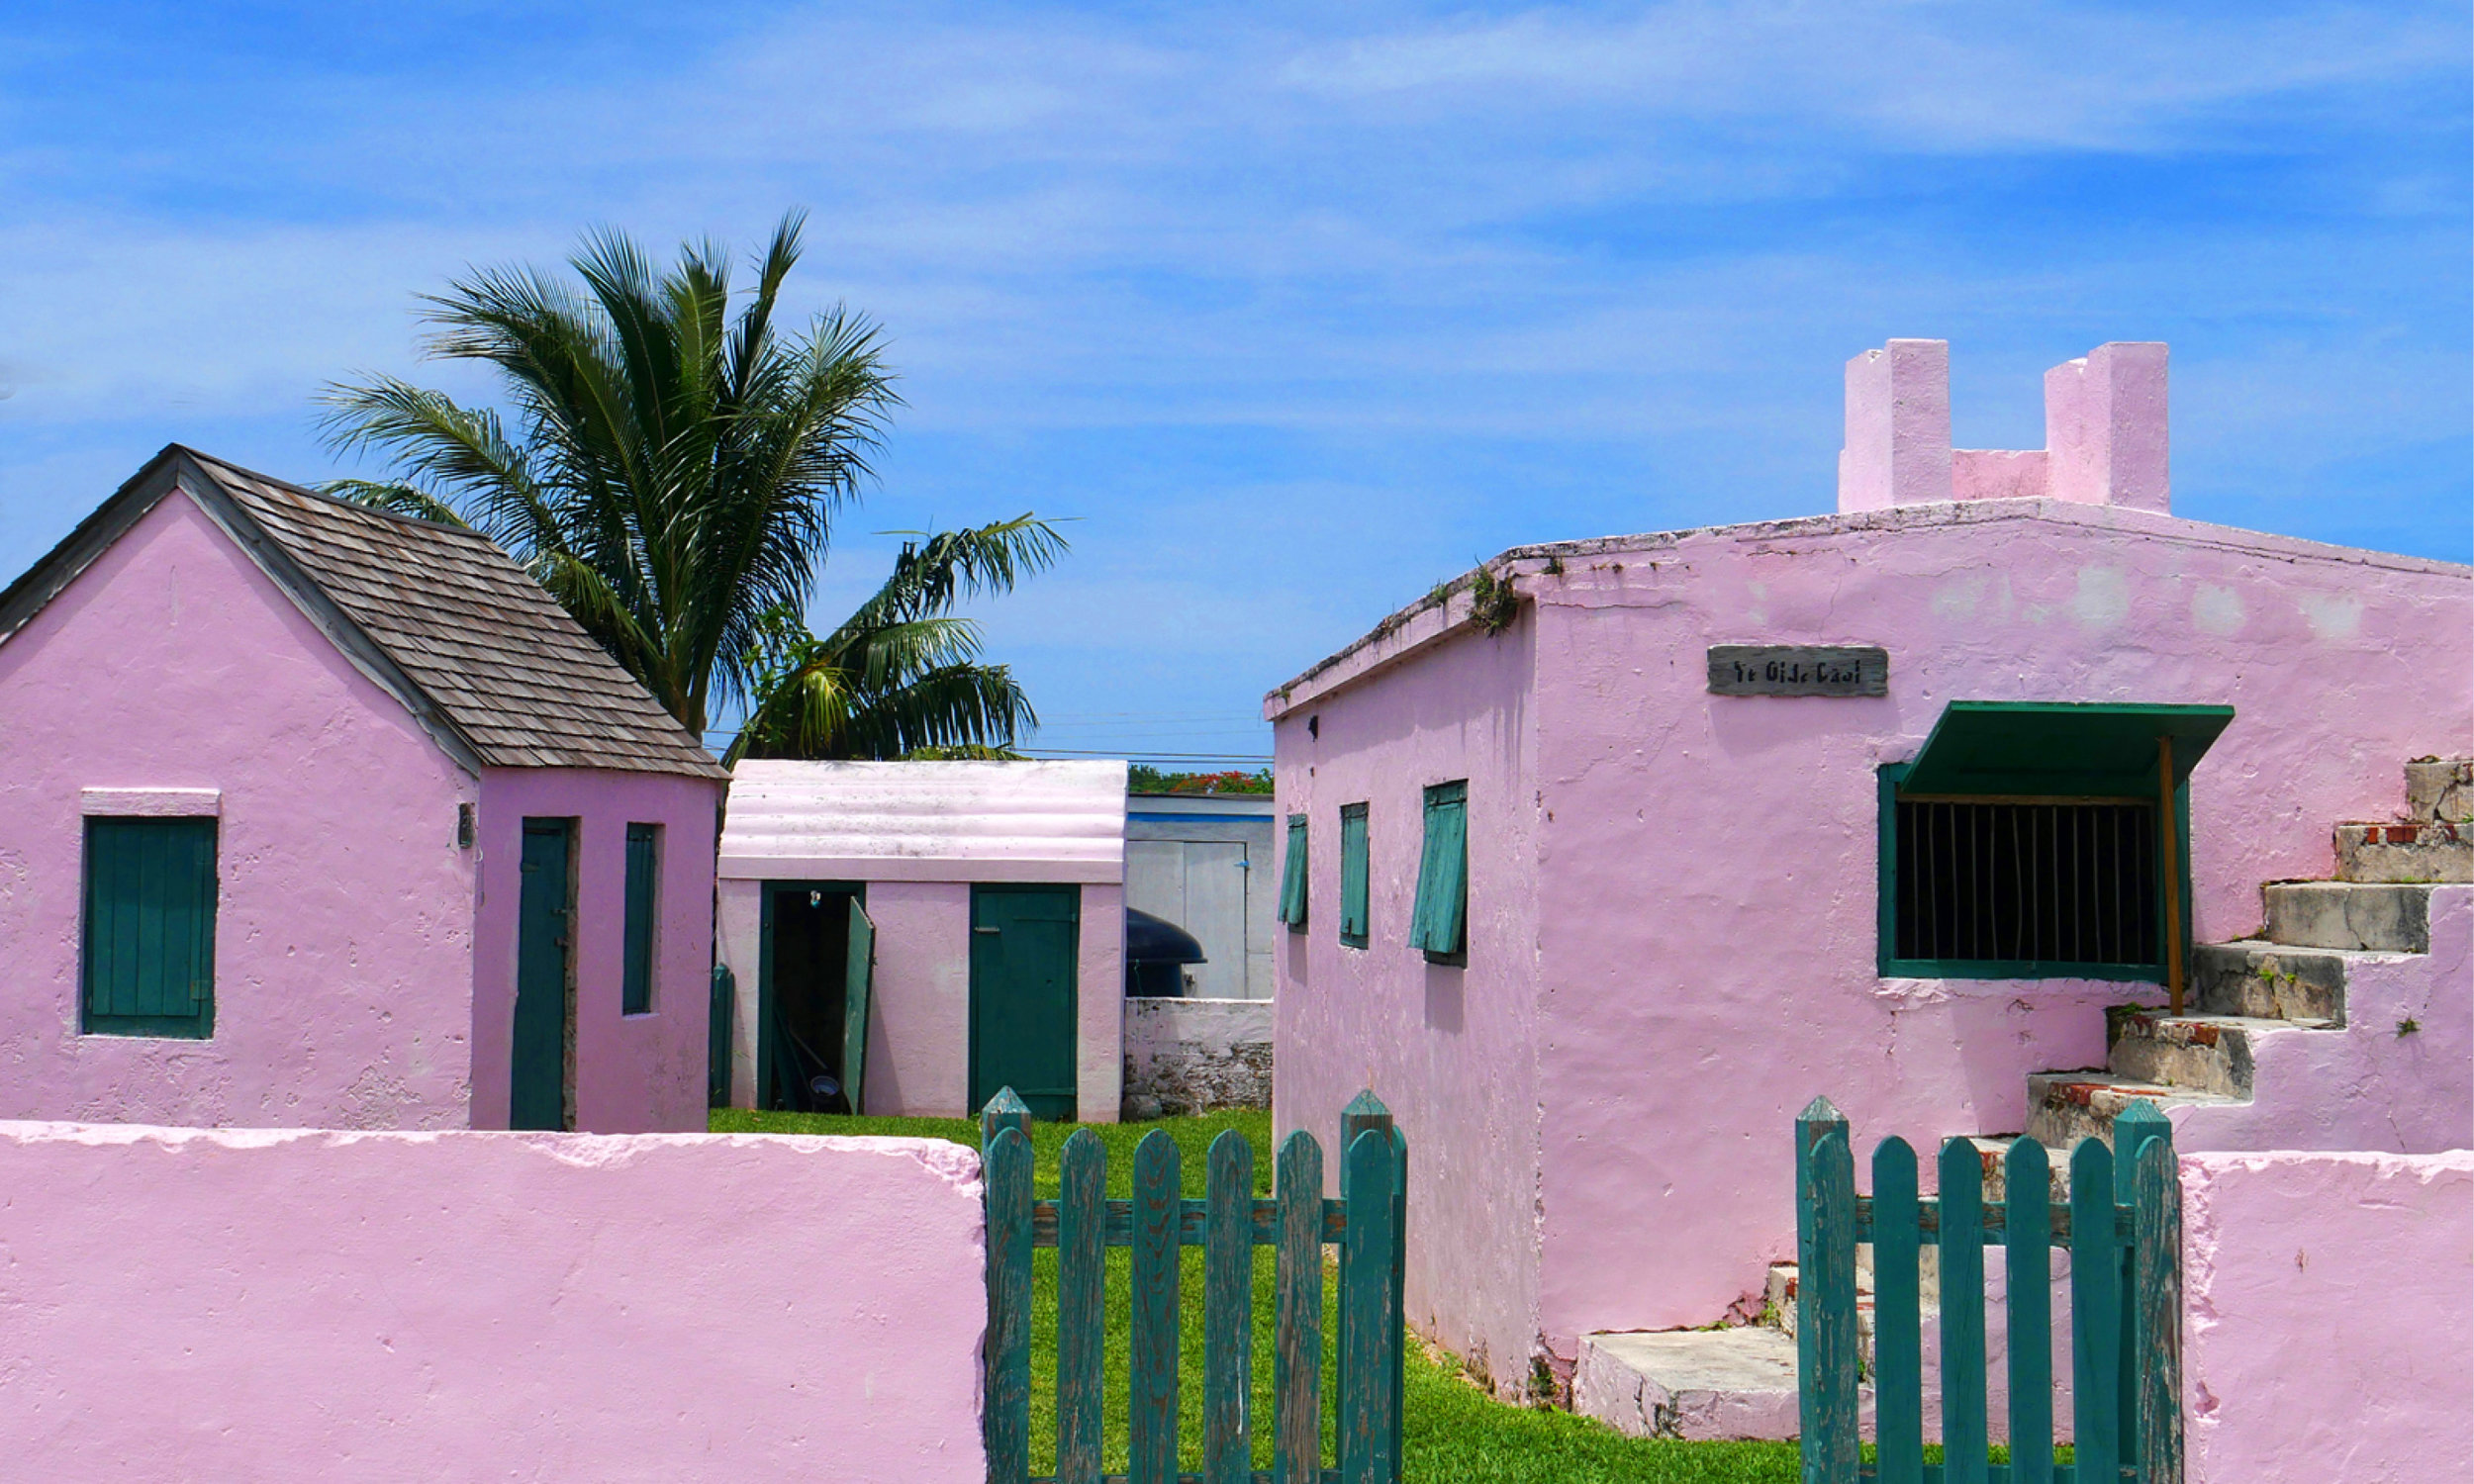 yacht-sweet-escape-charter-abaco-piggyville-Green-Turtle-Cay-Feed-Hope-Town-LightHouse-swimming-pigs-ye-ole-goal